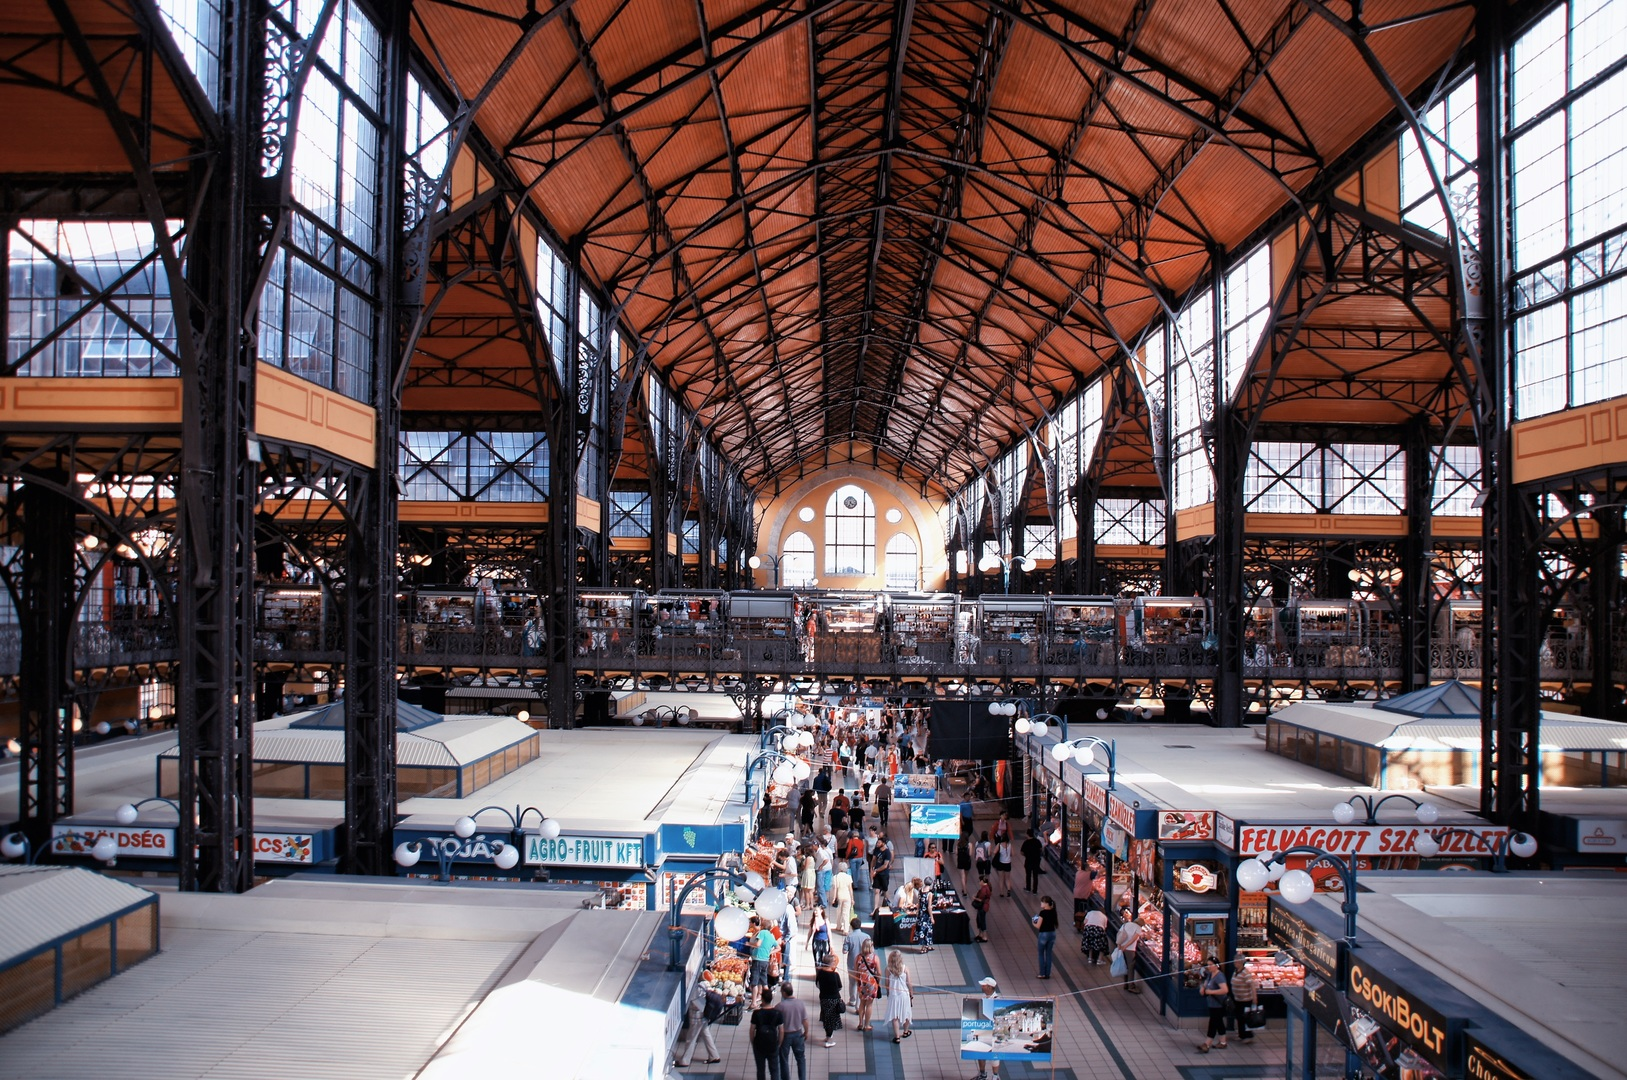 Central Market Hall - Amazing Sight-Seeing Destinations in Budapest (Hungary)